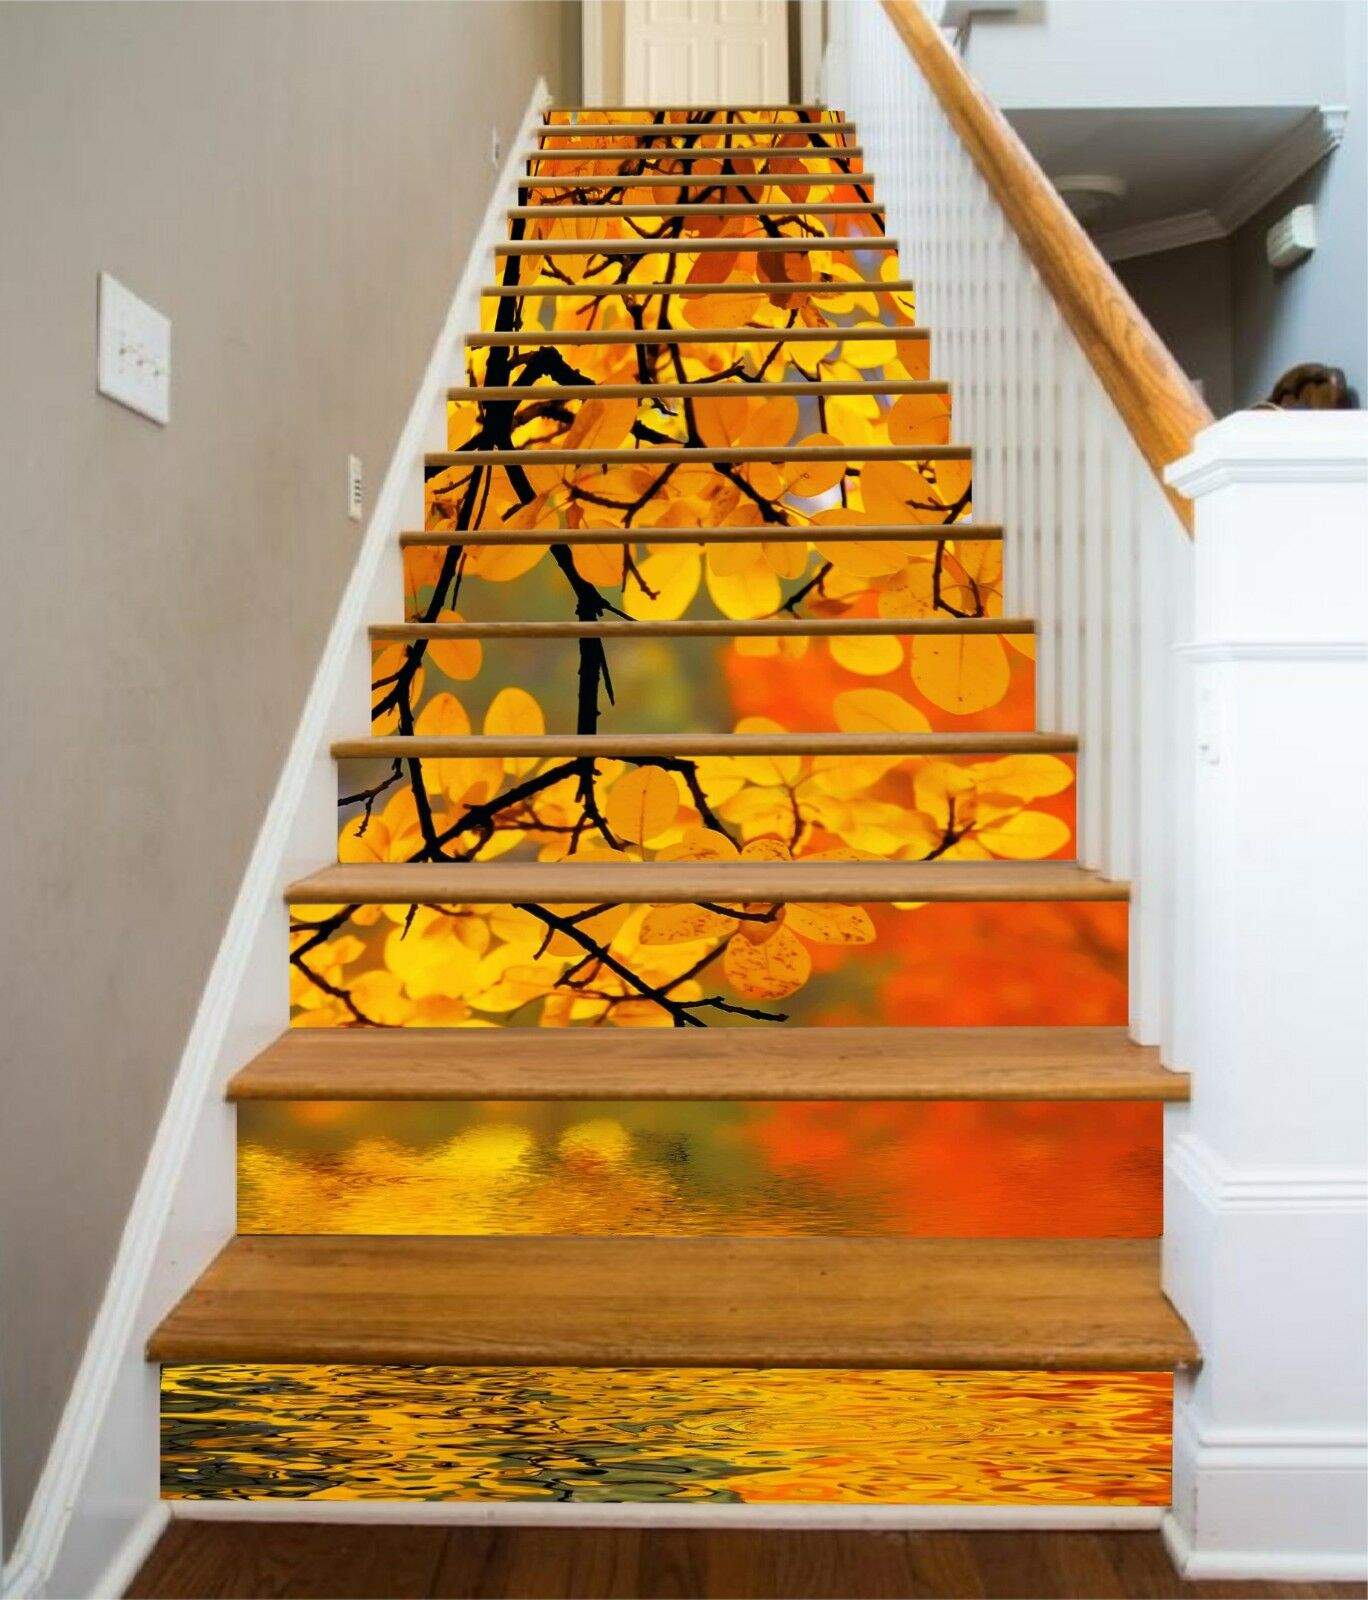 3D Tree Leaves Stair Risers Decoration Photo Mural Vinyl Decal WandPapier CA